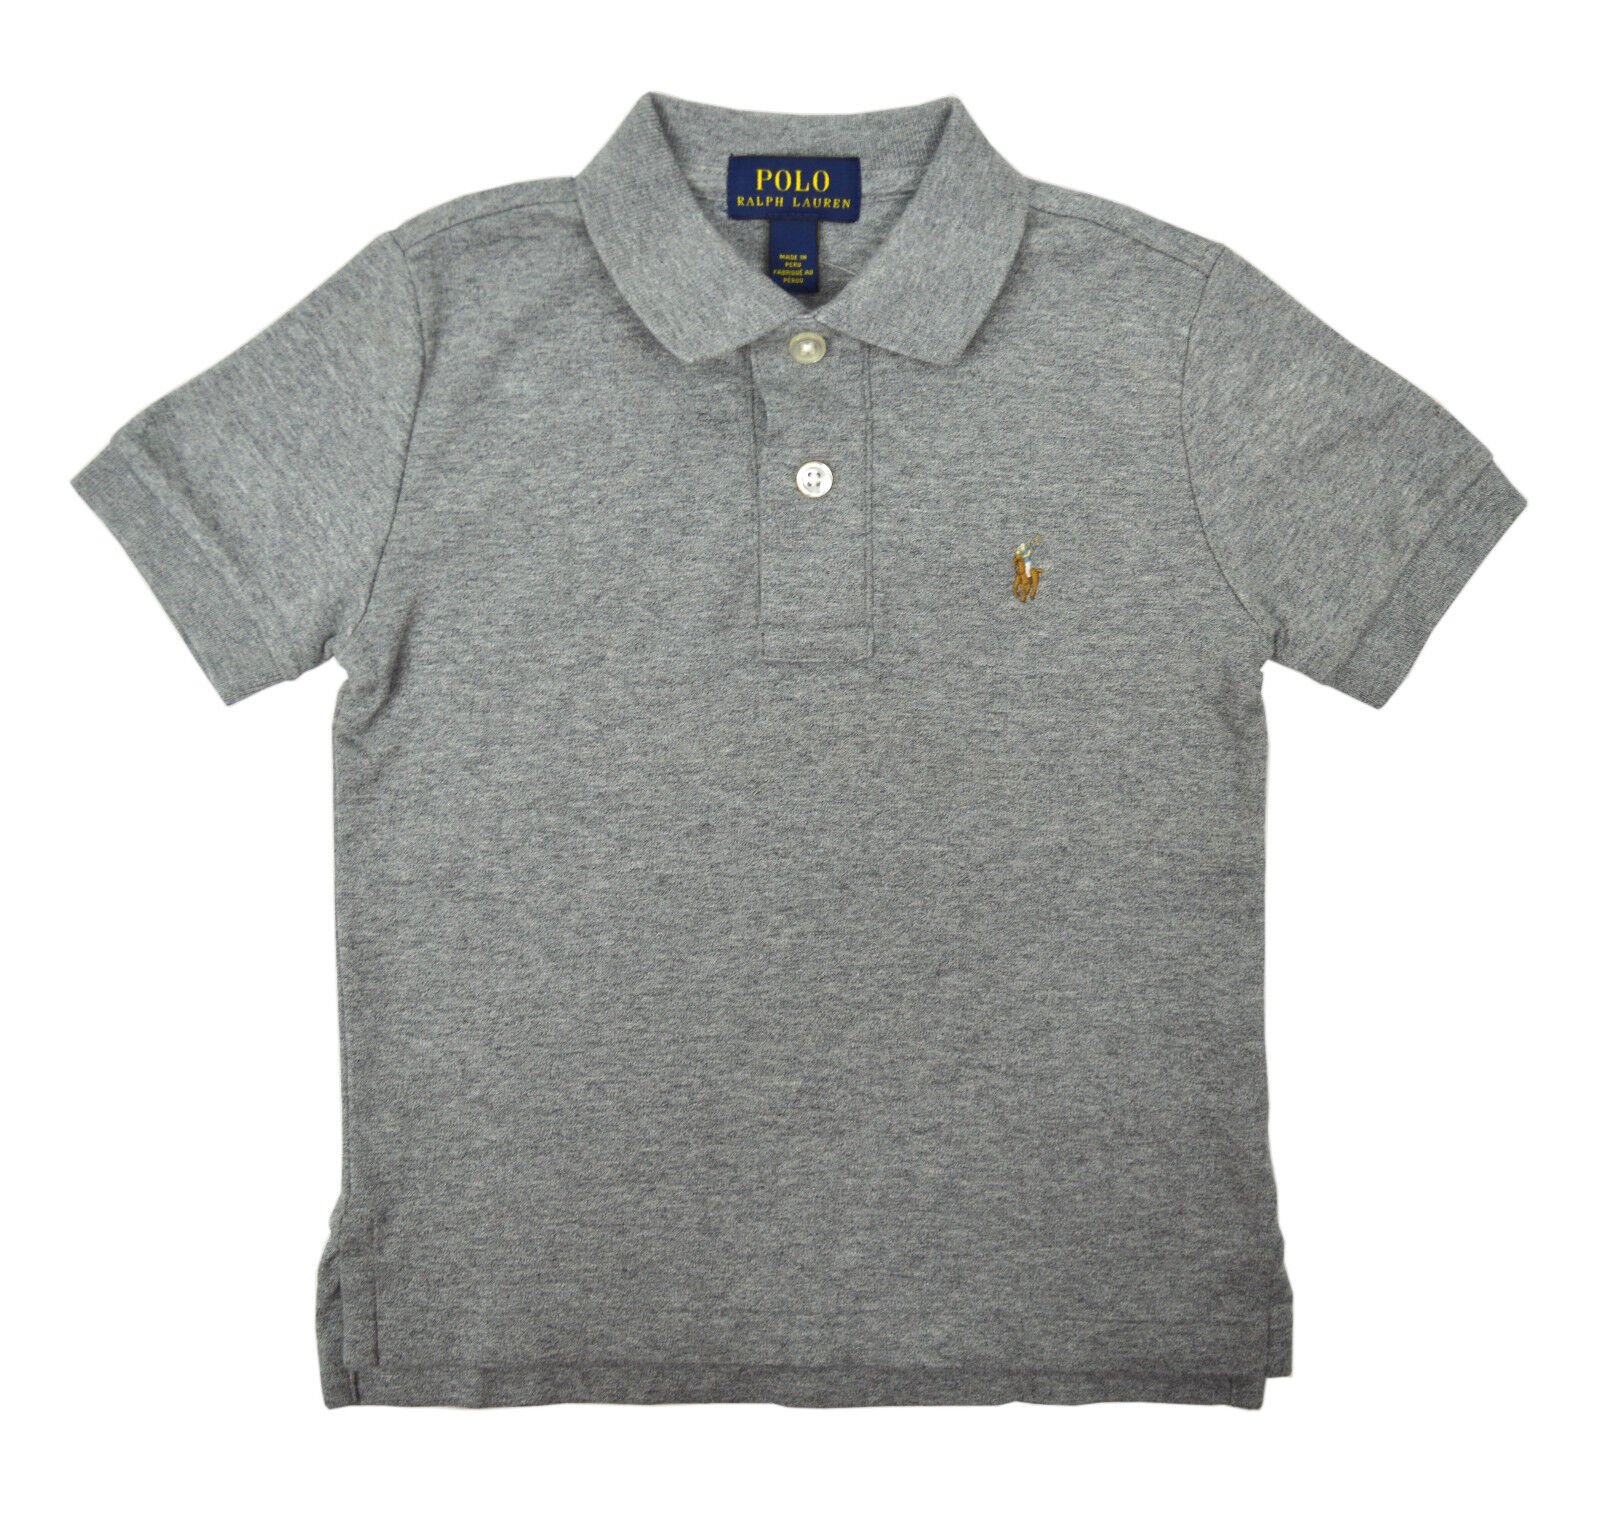 Polo Ralph Lauren Kid/'s Big Pony #3 Heather Grey S//S T-Shirt